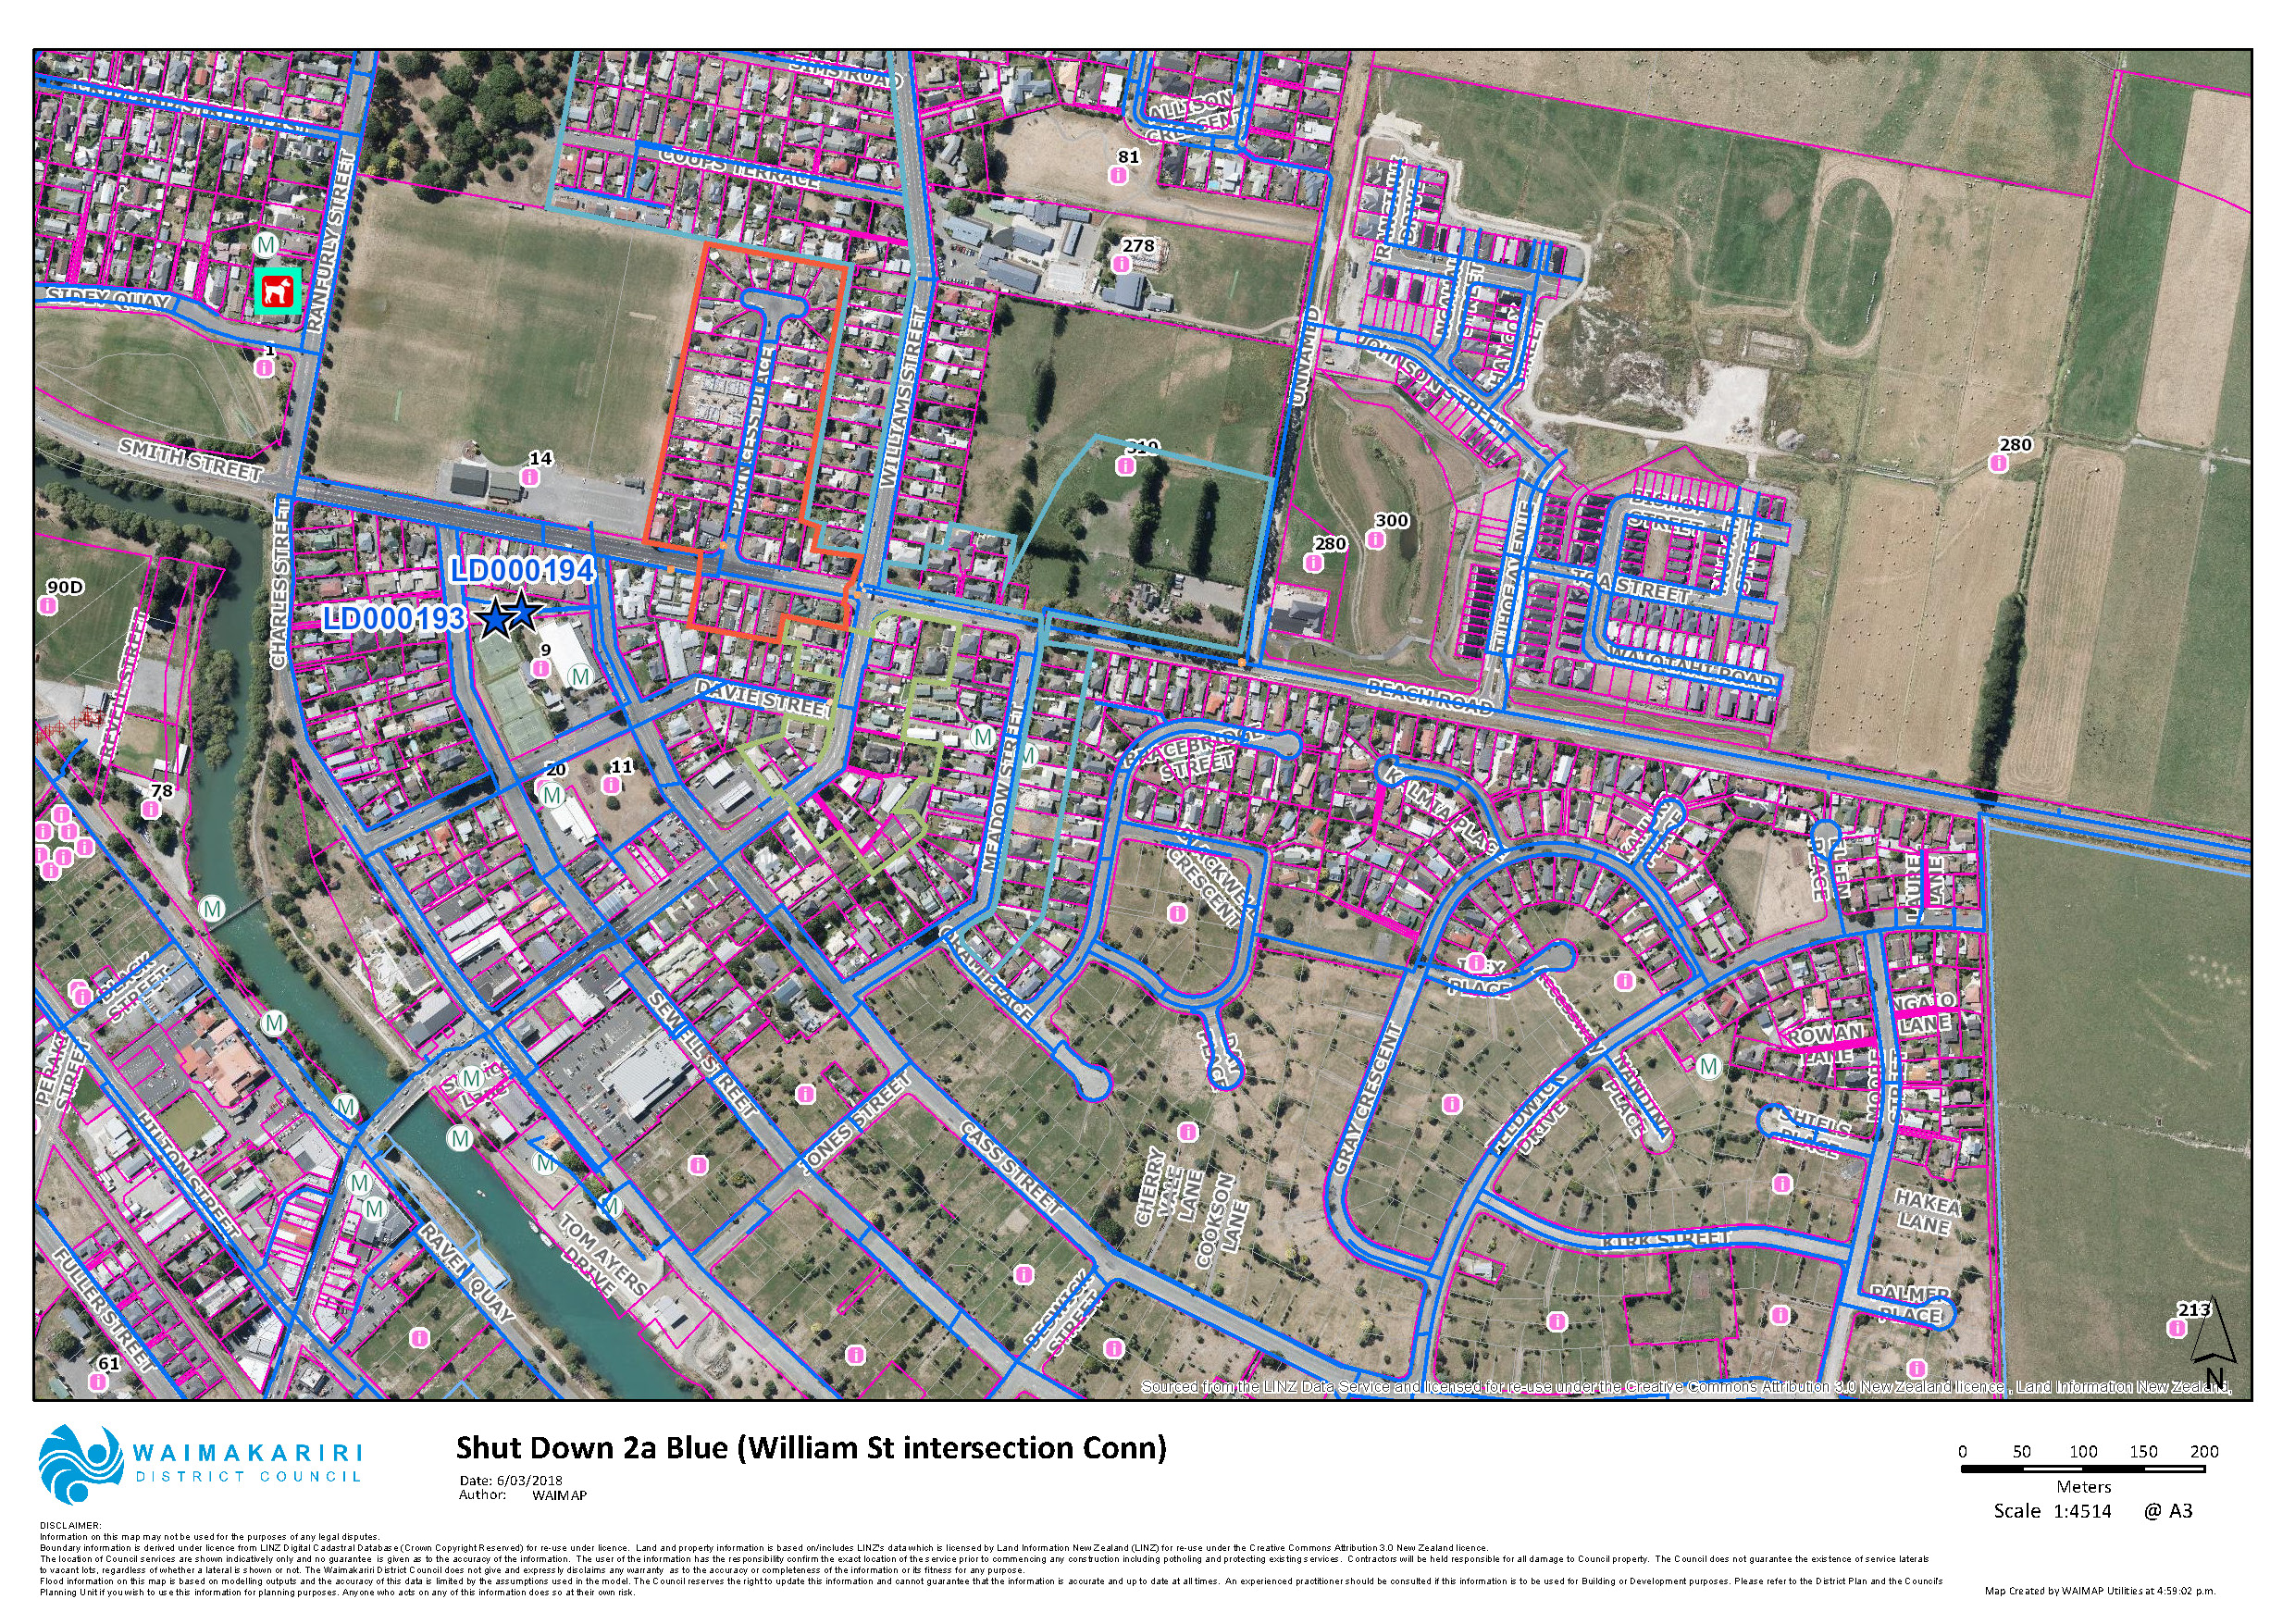 Map showing location of water shut down in Kaiapoi